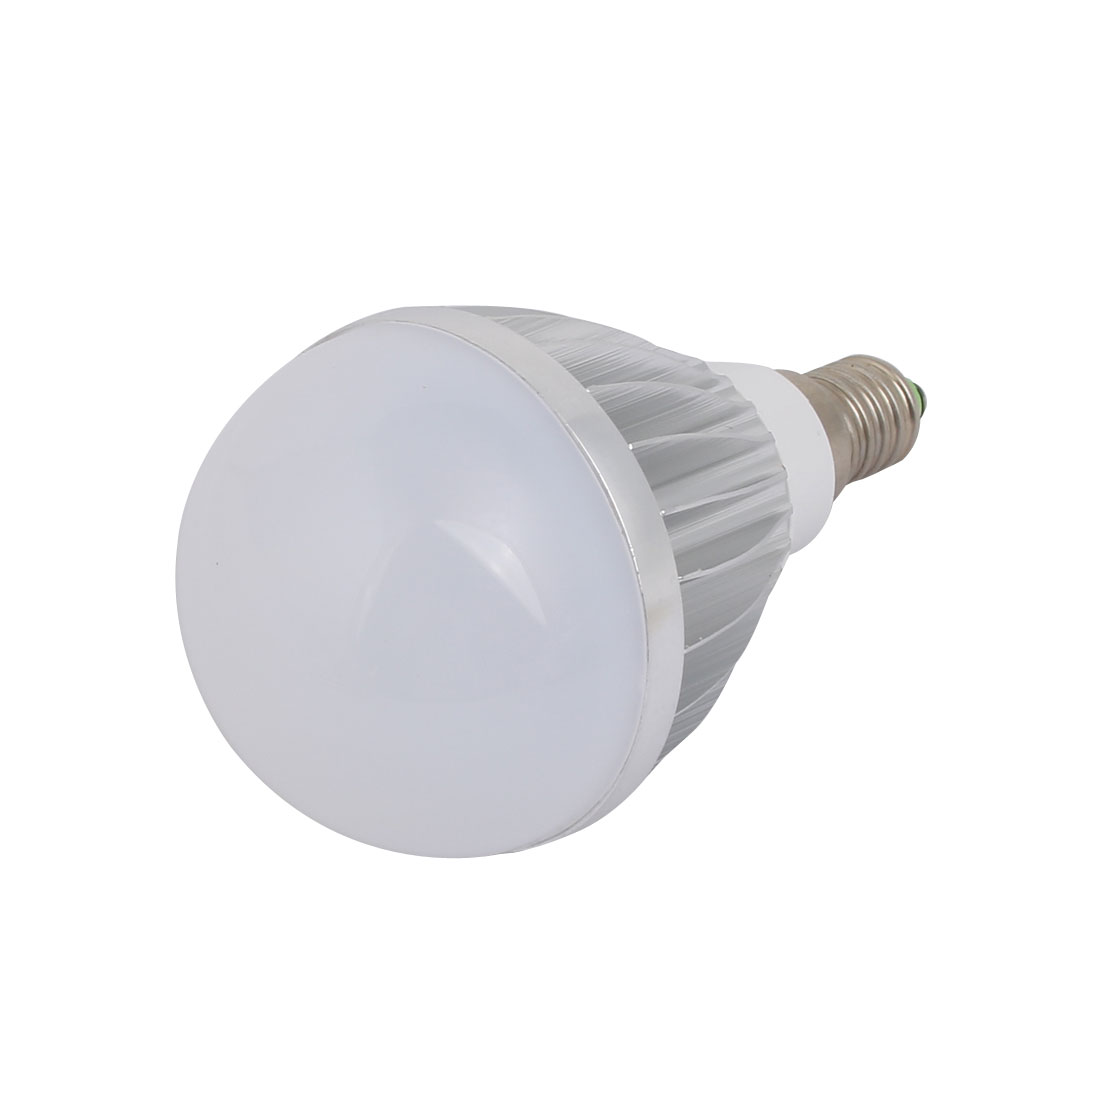 5W Slivery Aluminum Ball - Bulb Lamp Housing E14 Screw Base with White Cover